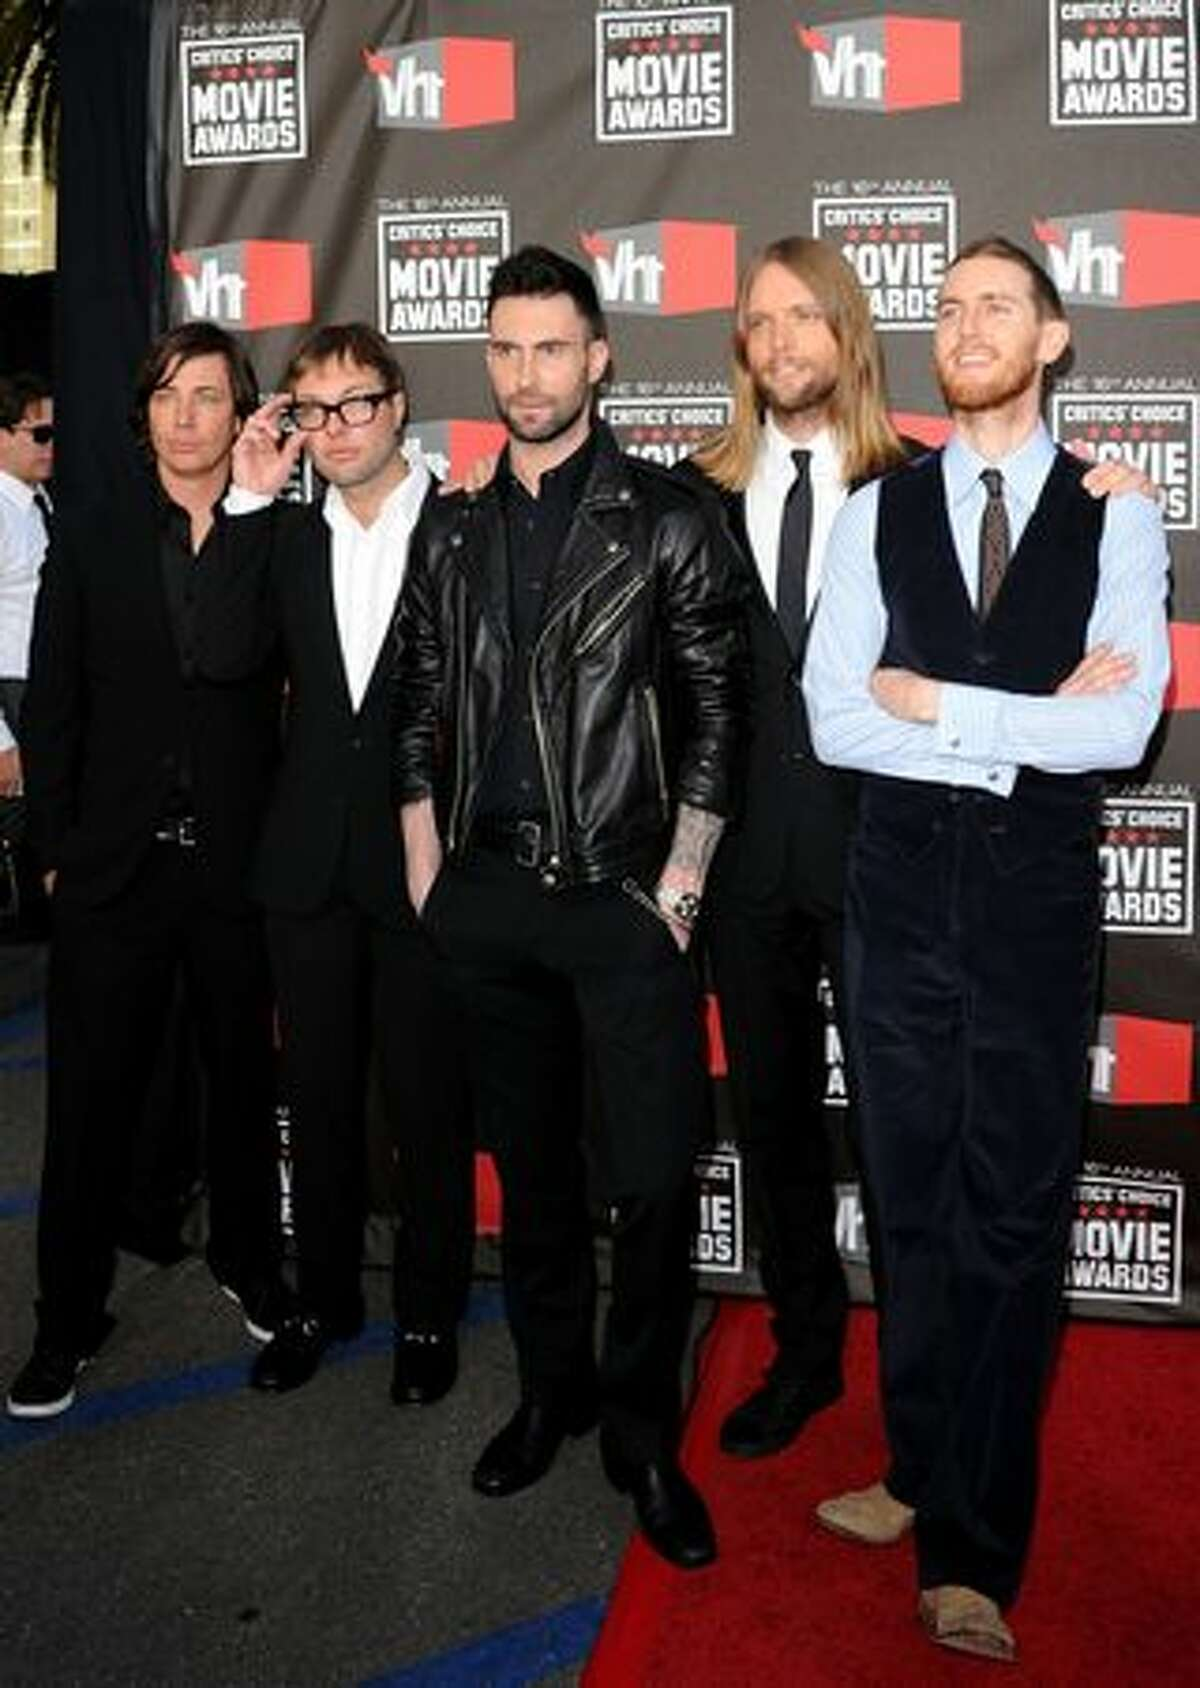 (L-R) Musicians Matt Flynn. Mickey Madden. Adam Levine, James Valentine, and Jesse Carmichael from the musical group Maroon 5 arrives.